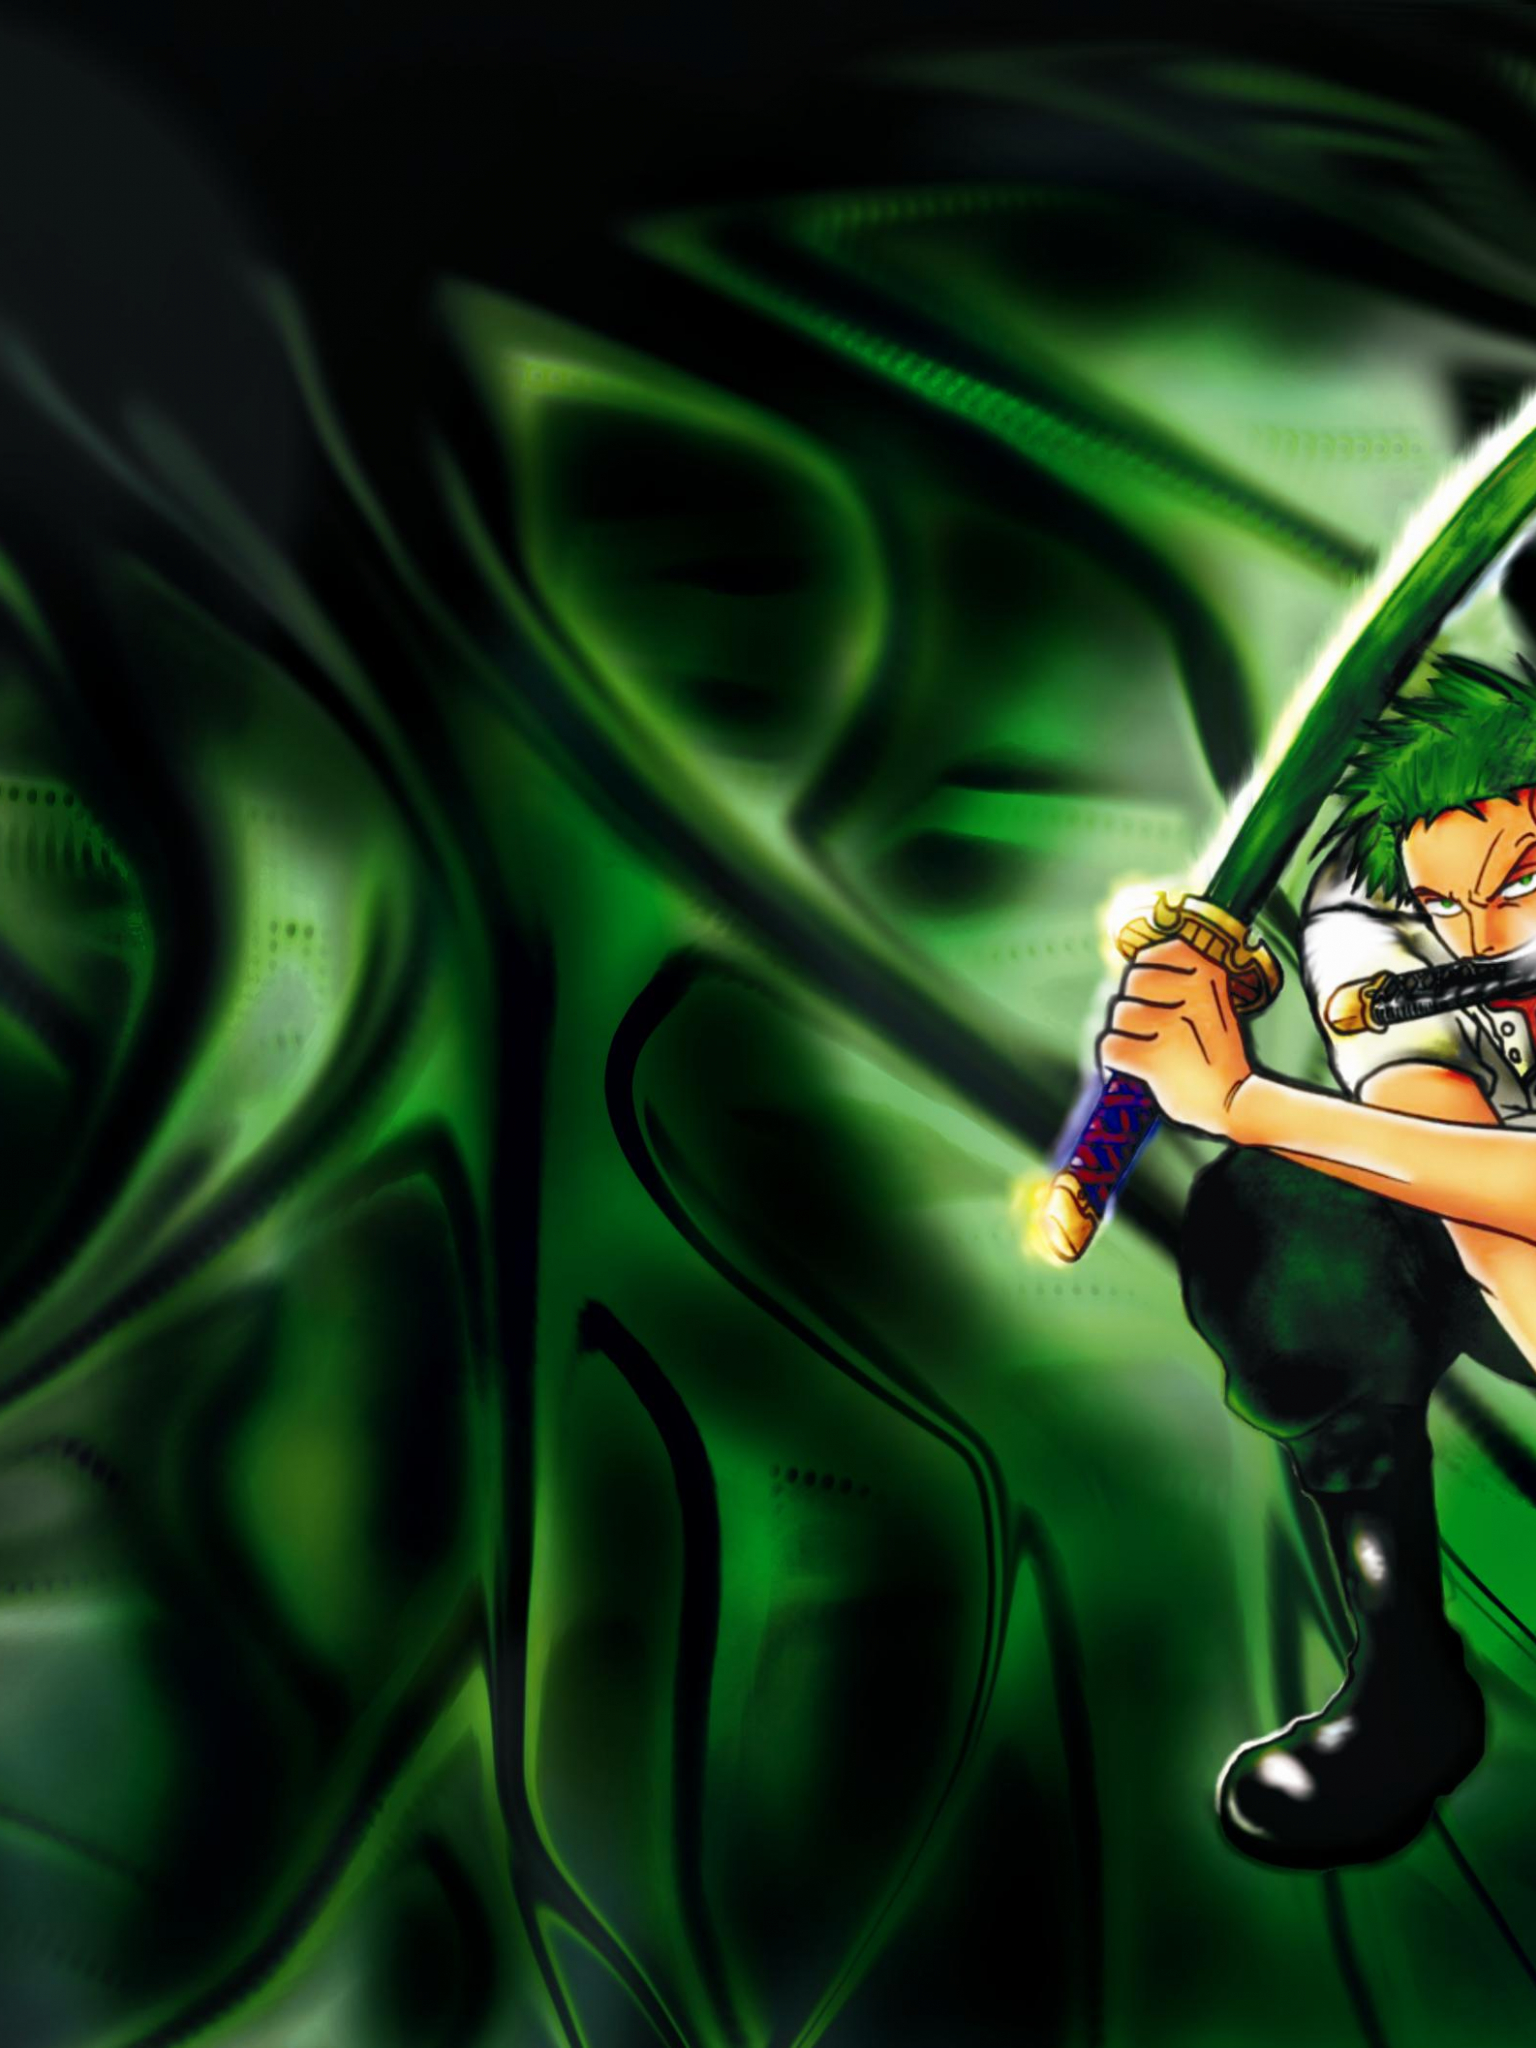 Luffy hd wallpapers and background images. Zoro Wallpapers On Wallpaperdog